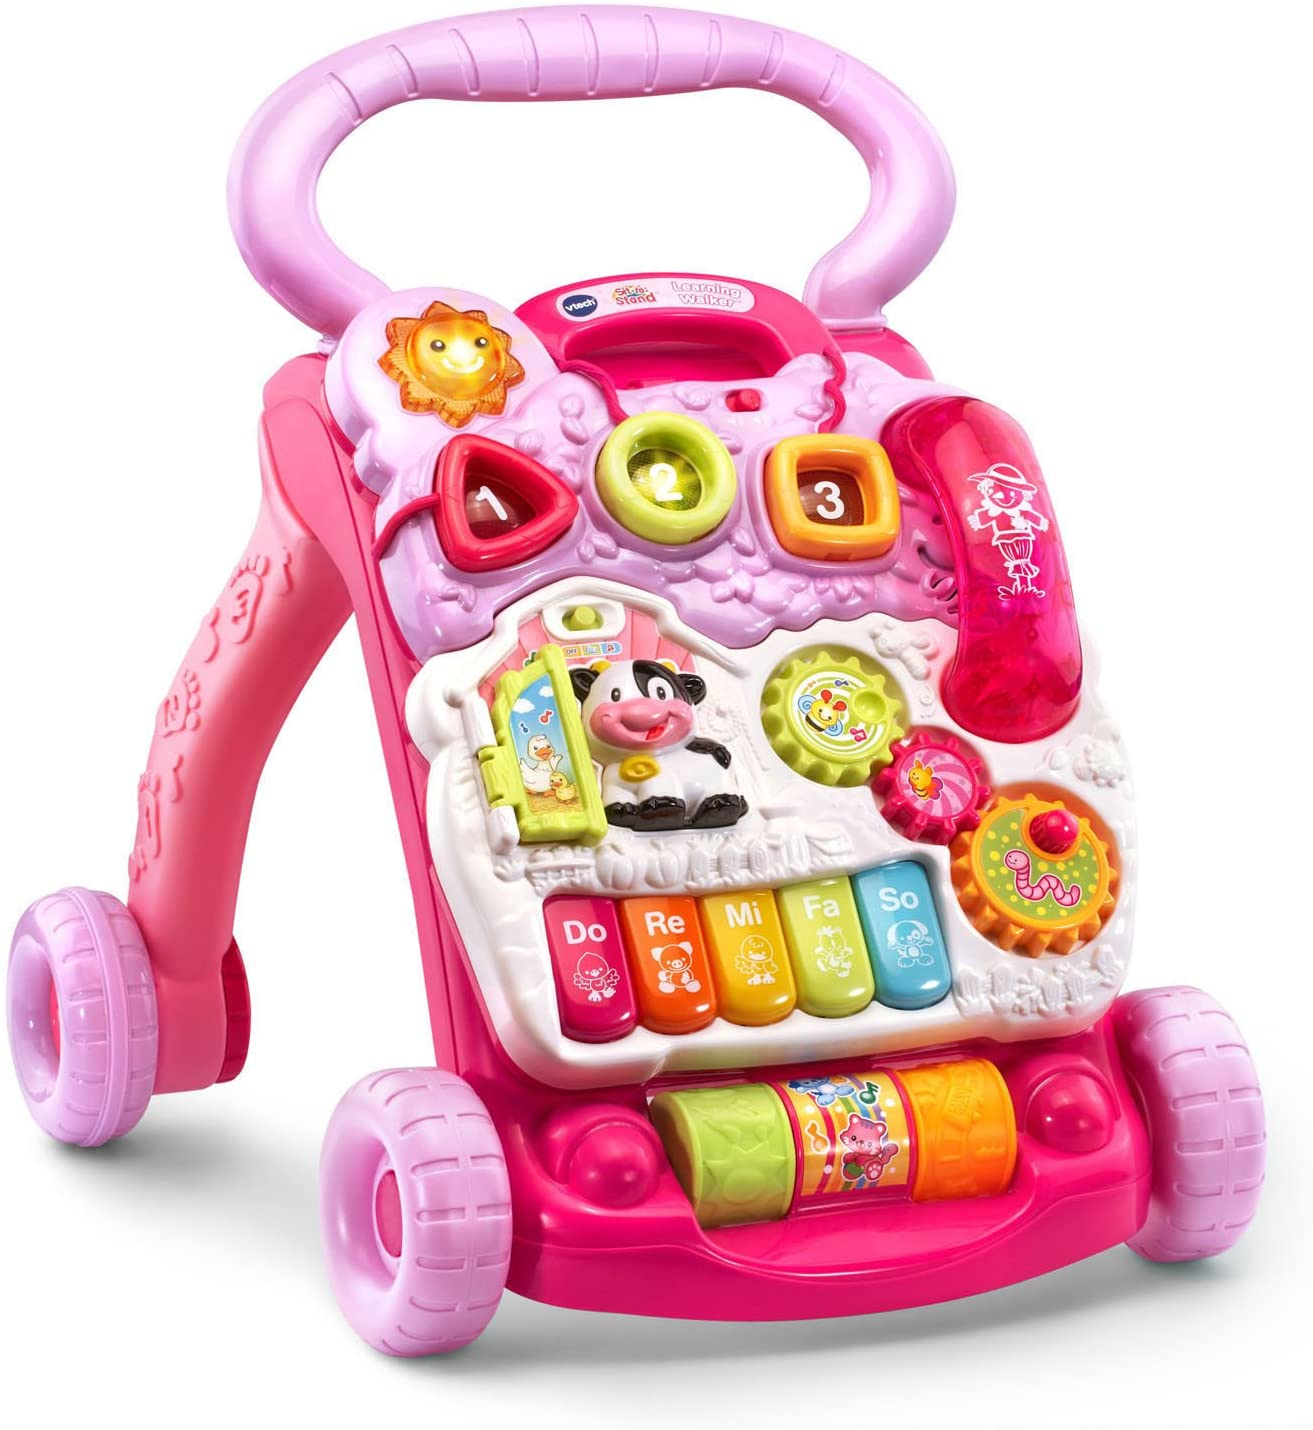 Amazon.com: Andador VTech Sit-to-Stand, rosa: Toys & Games